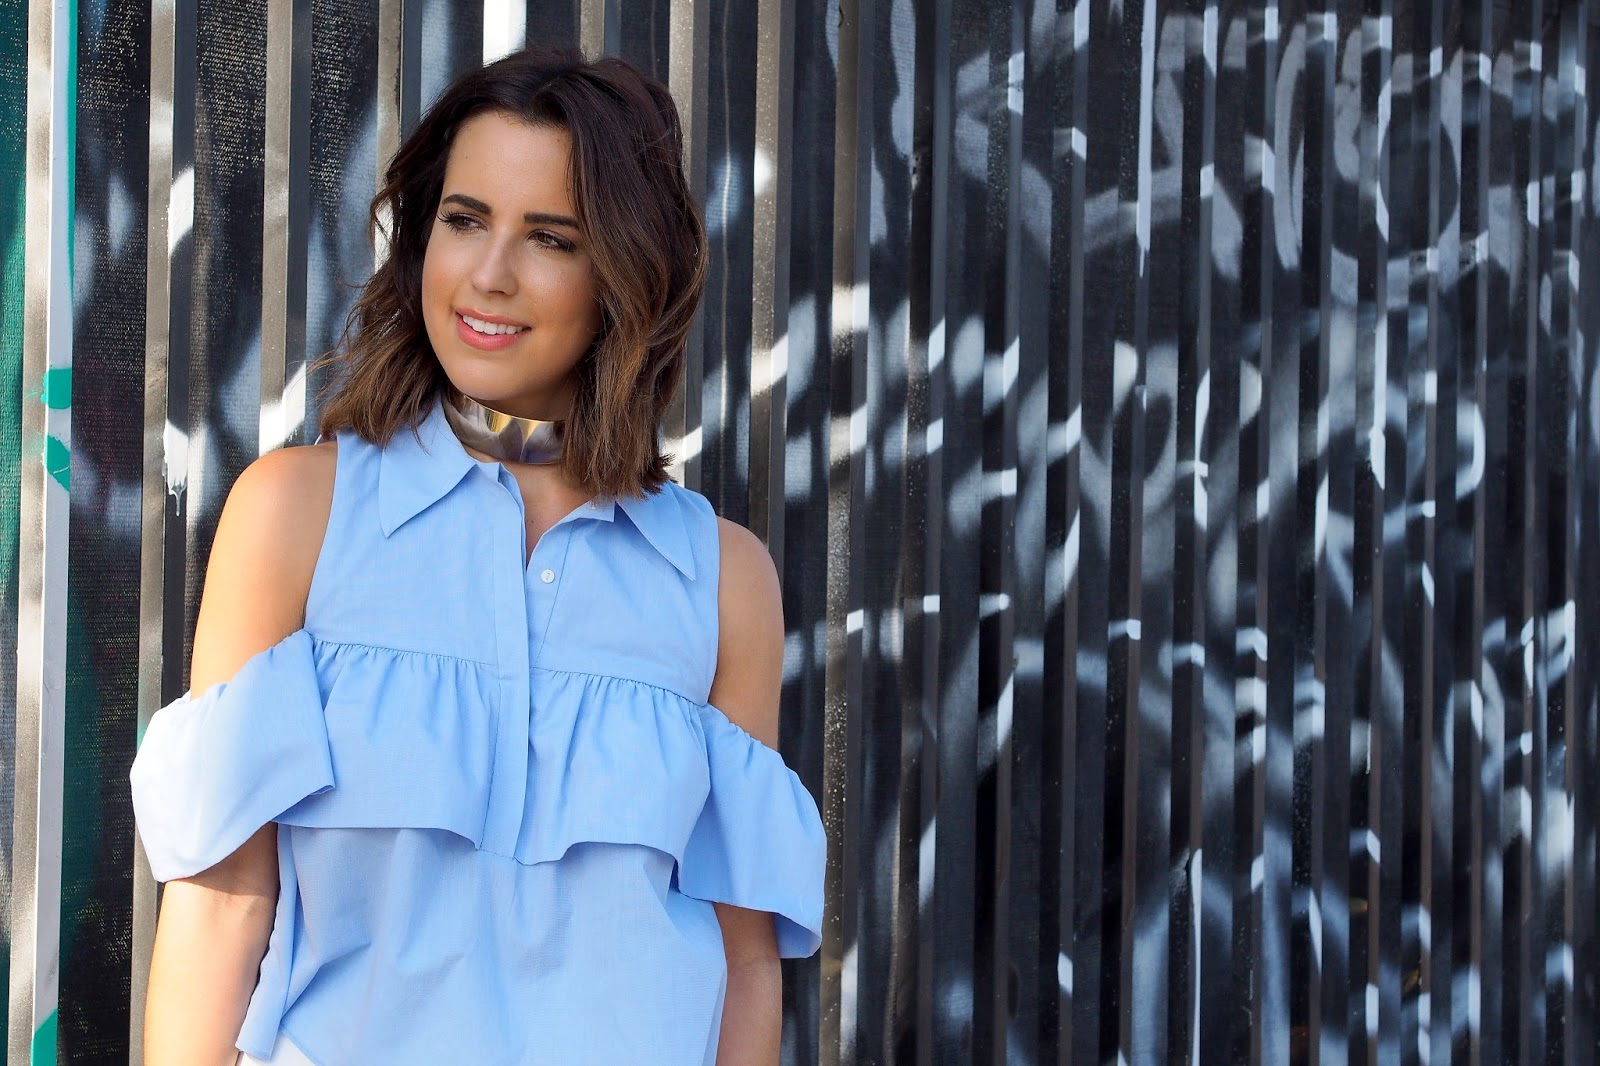 fashion-blogger-kelly-saks-zara-shoulder-blouse